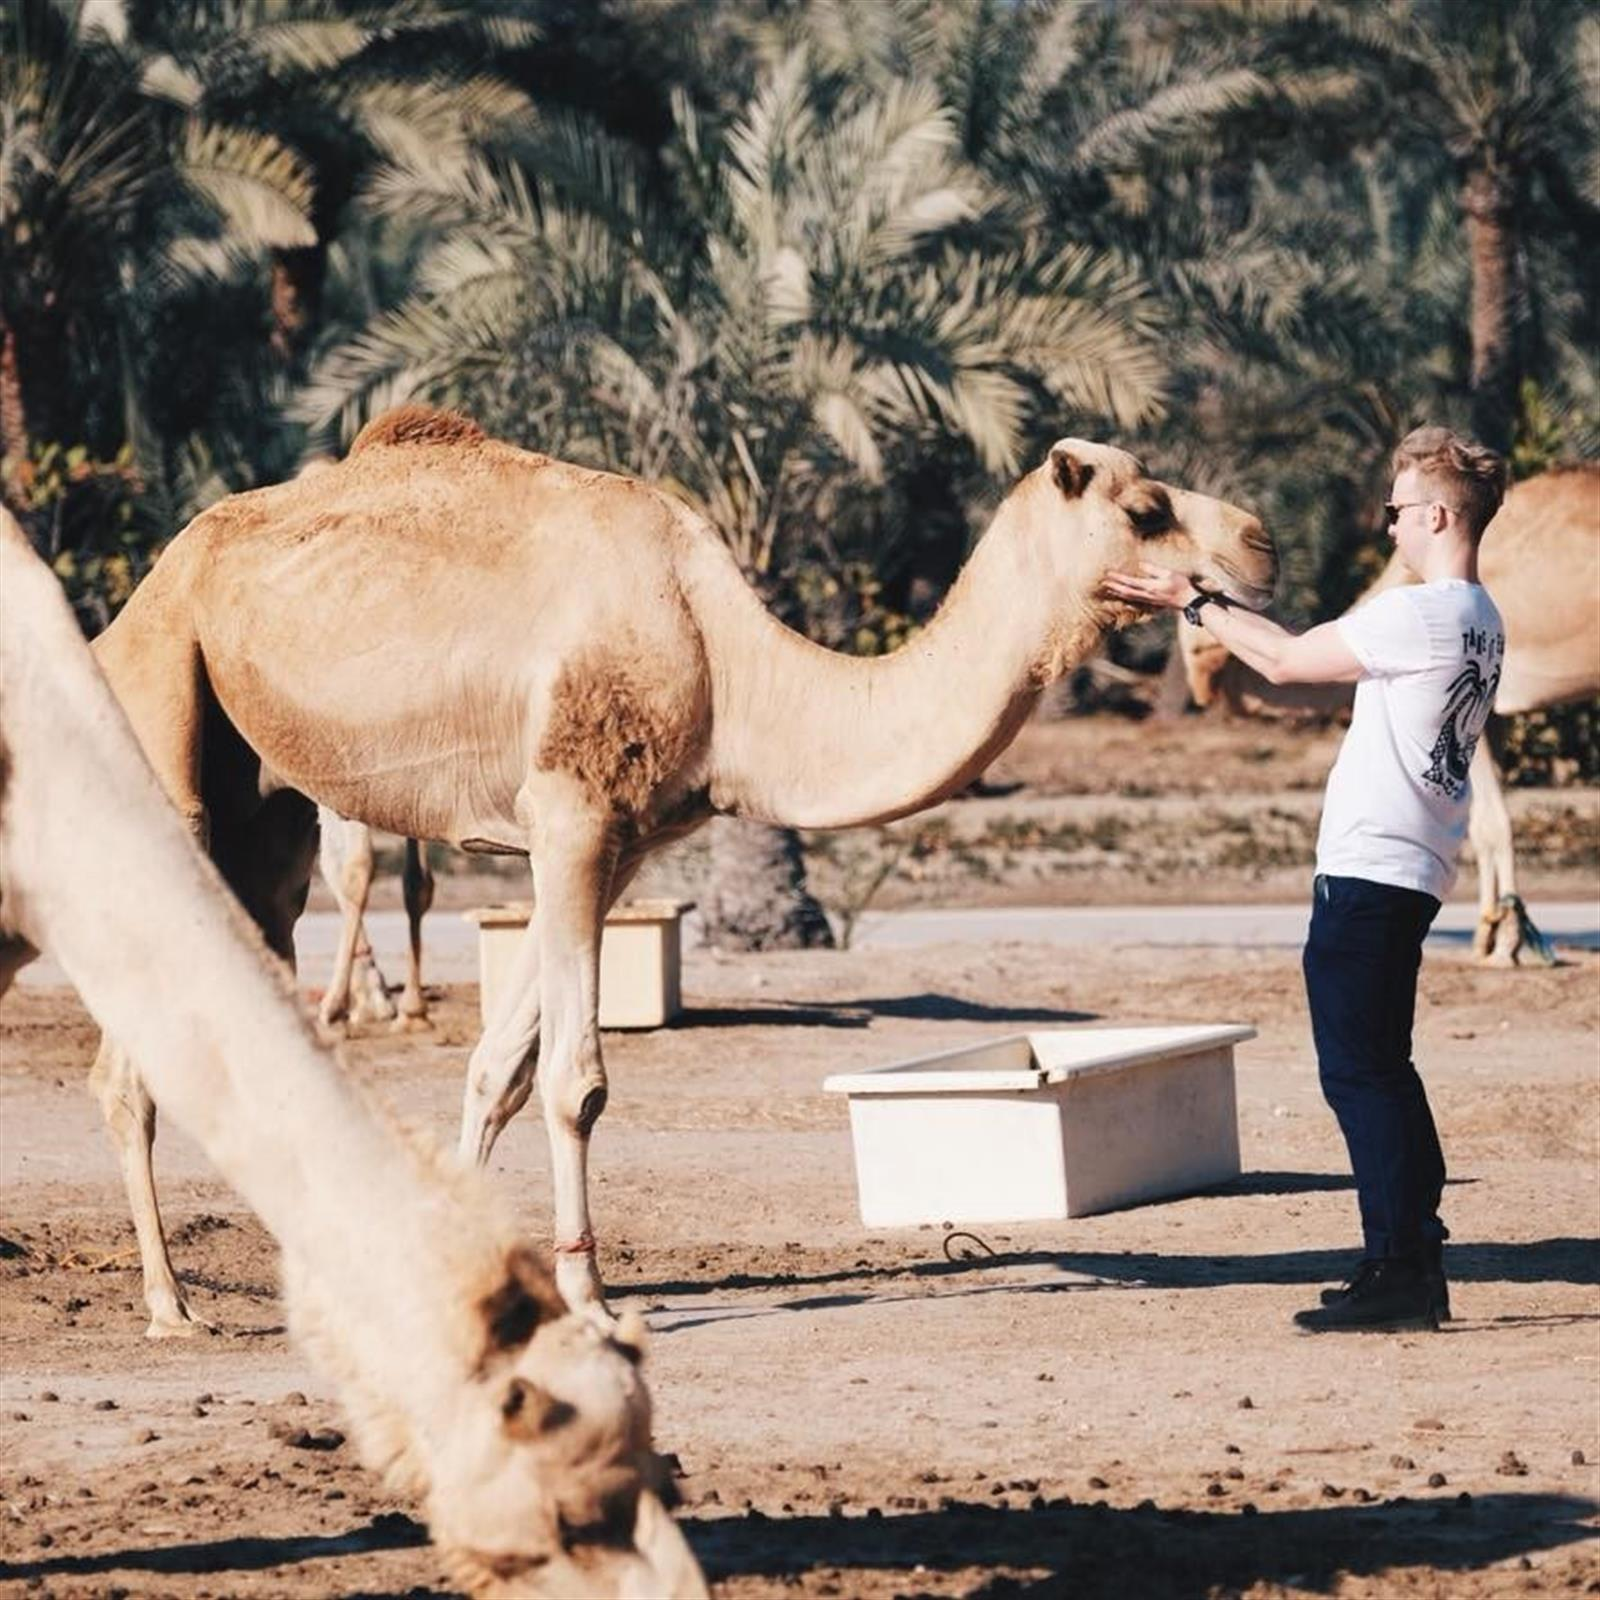 Joel in his backyard at a Bahrain camel farm